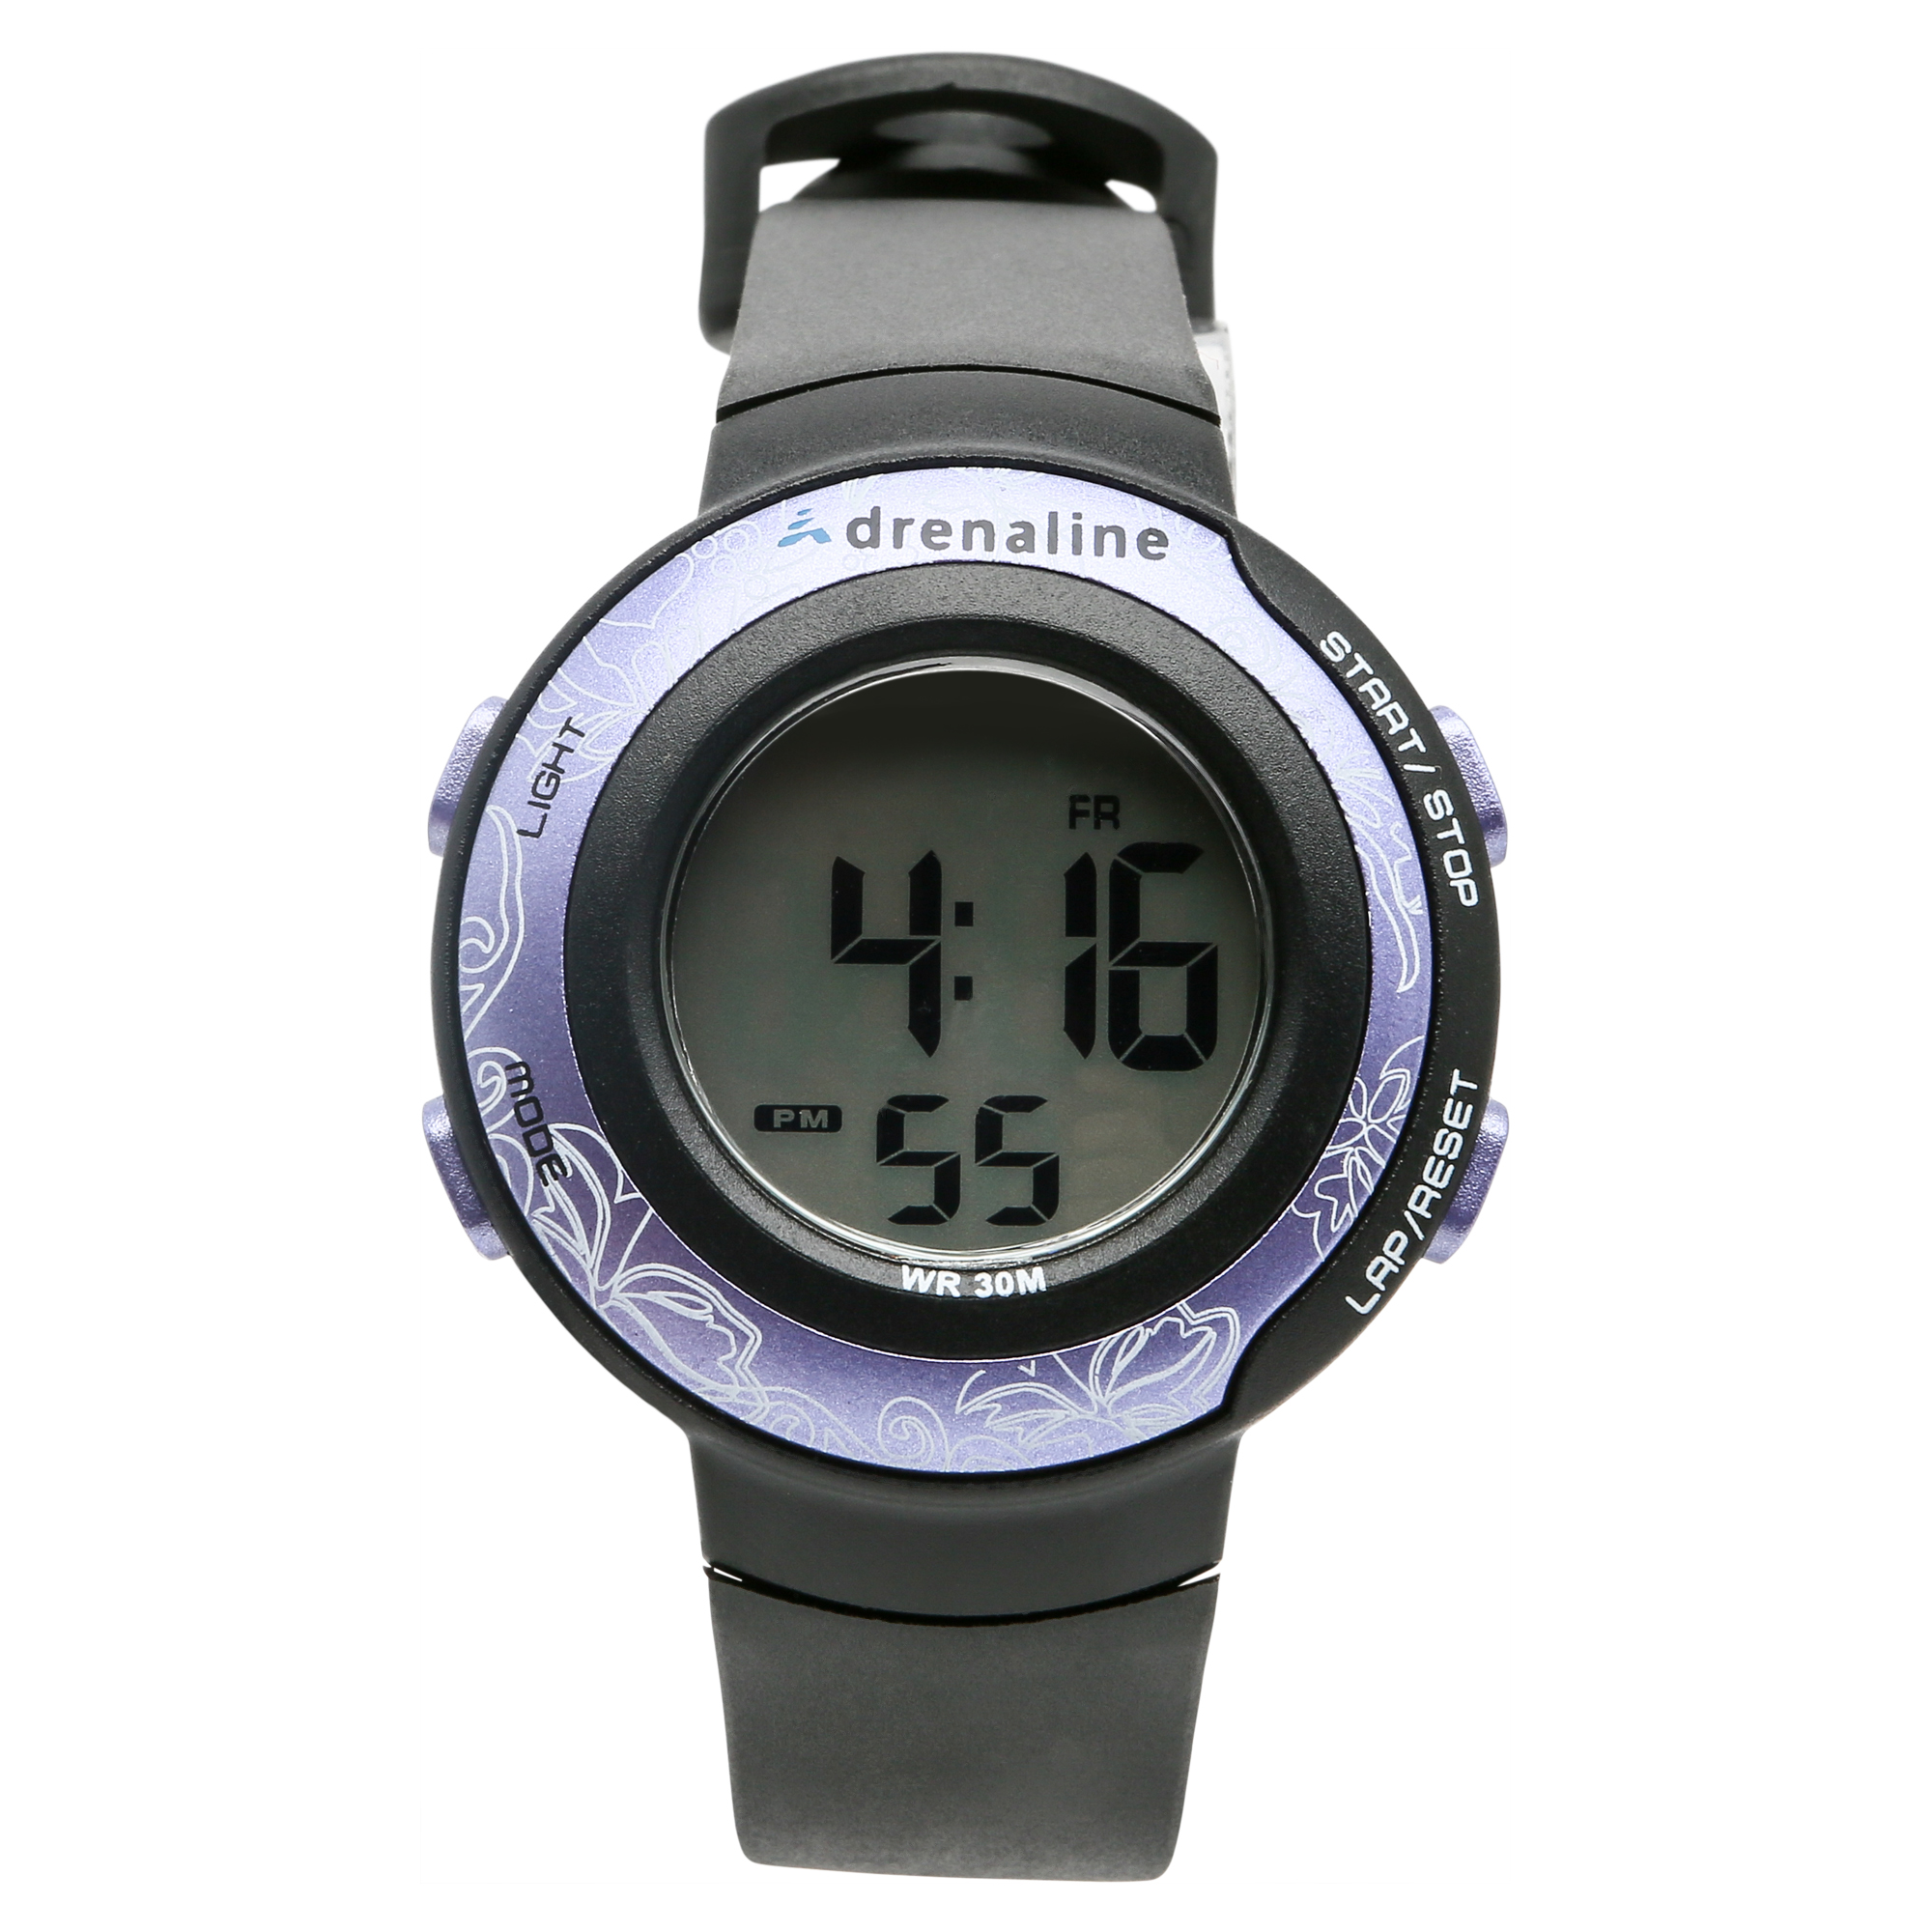 Image of Adrenaline by Freestyle Unisex Black Rubber Sports Watch